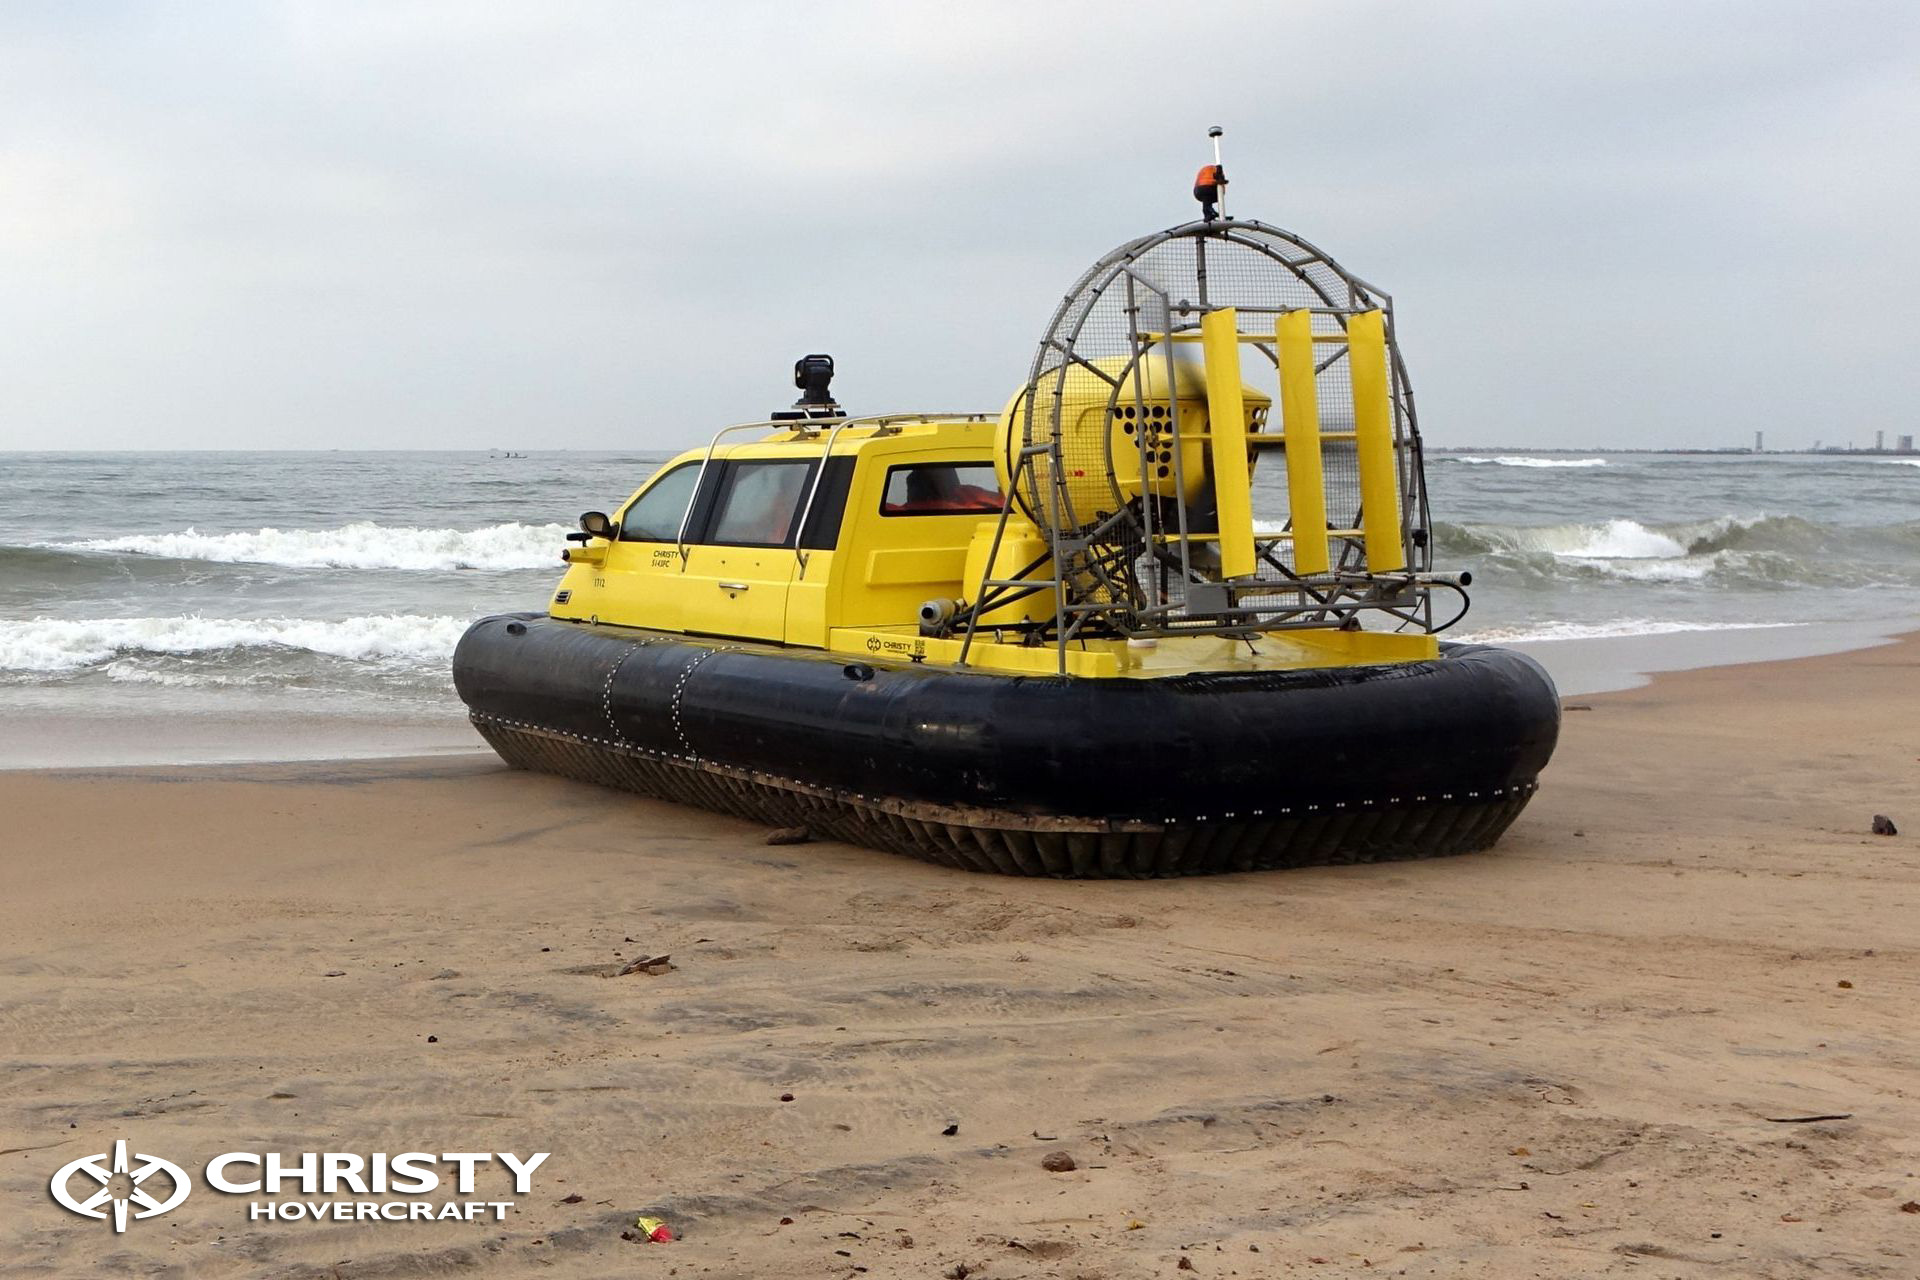 hovercraft-christy-5_7series-40.jpg | фото №16